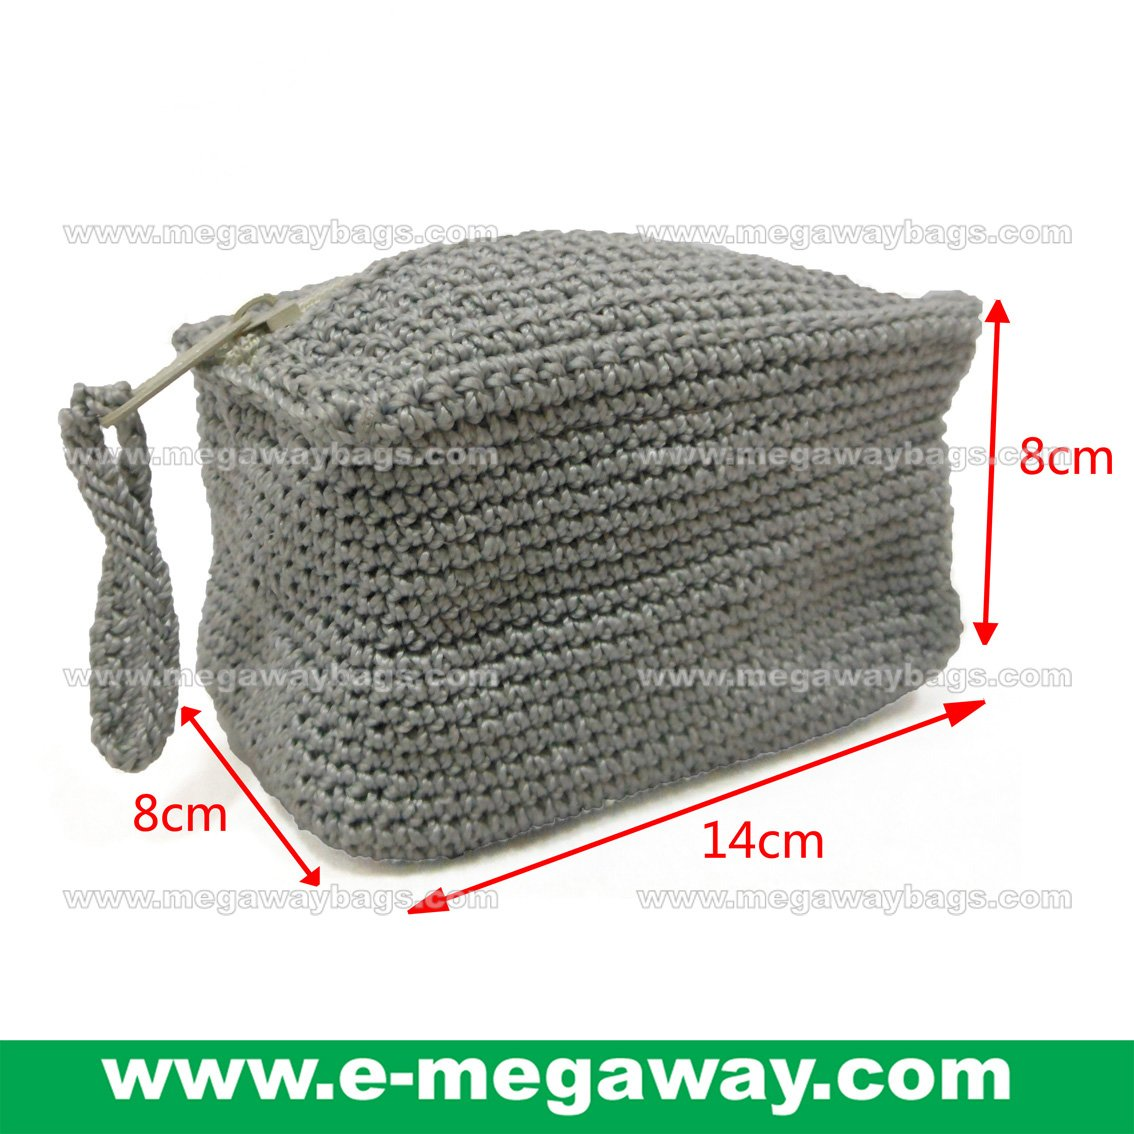 Small Crochet Bags Wallets Zip Pouch Knitted Craft Amenity Accessory MegawayBags #CC-1040